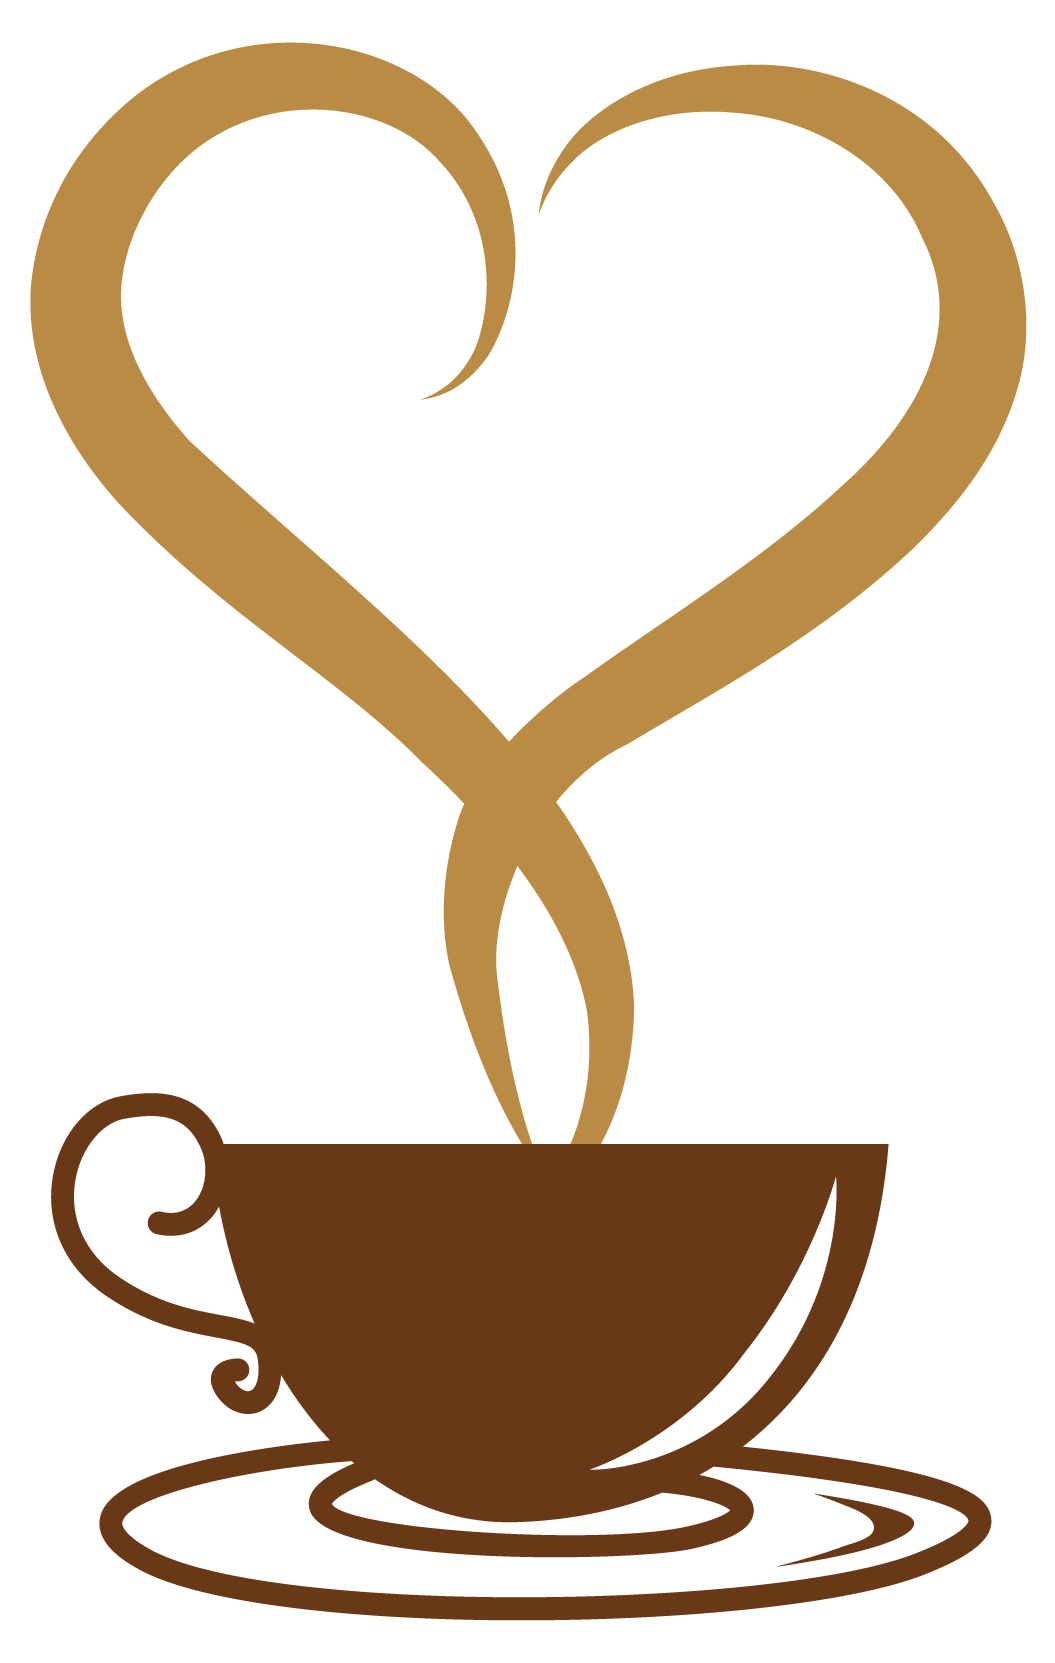 1055x1663 Coffee Cup Starbucks Cup Clipart Top Pictures Gallery Image